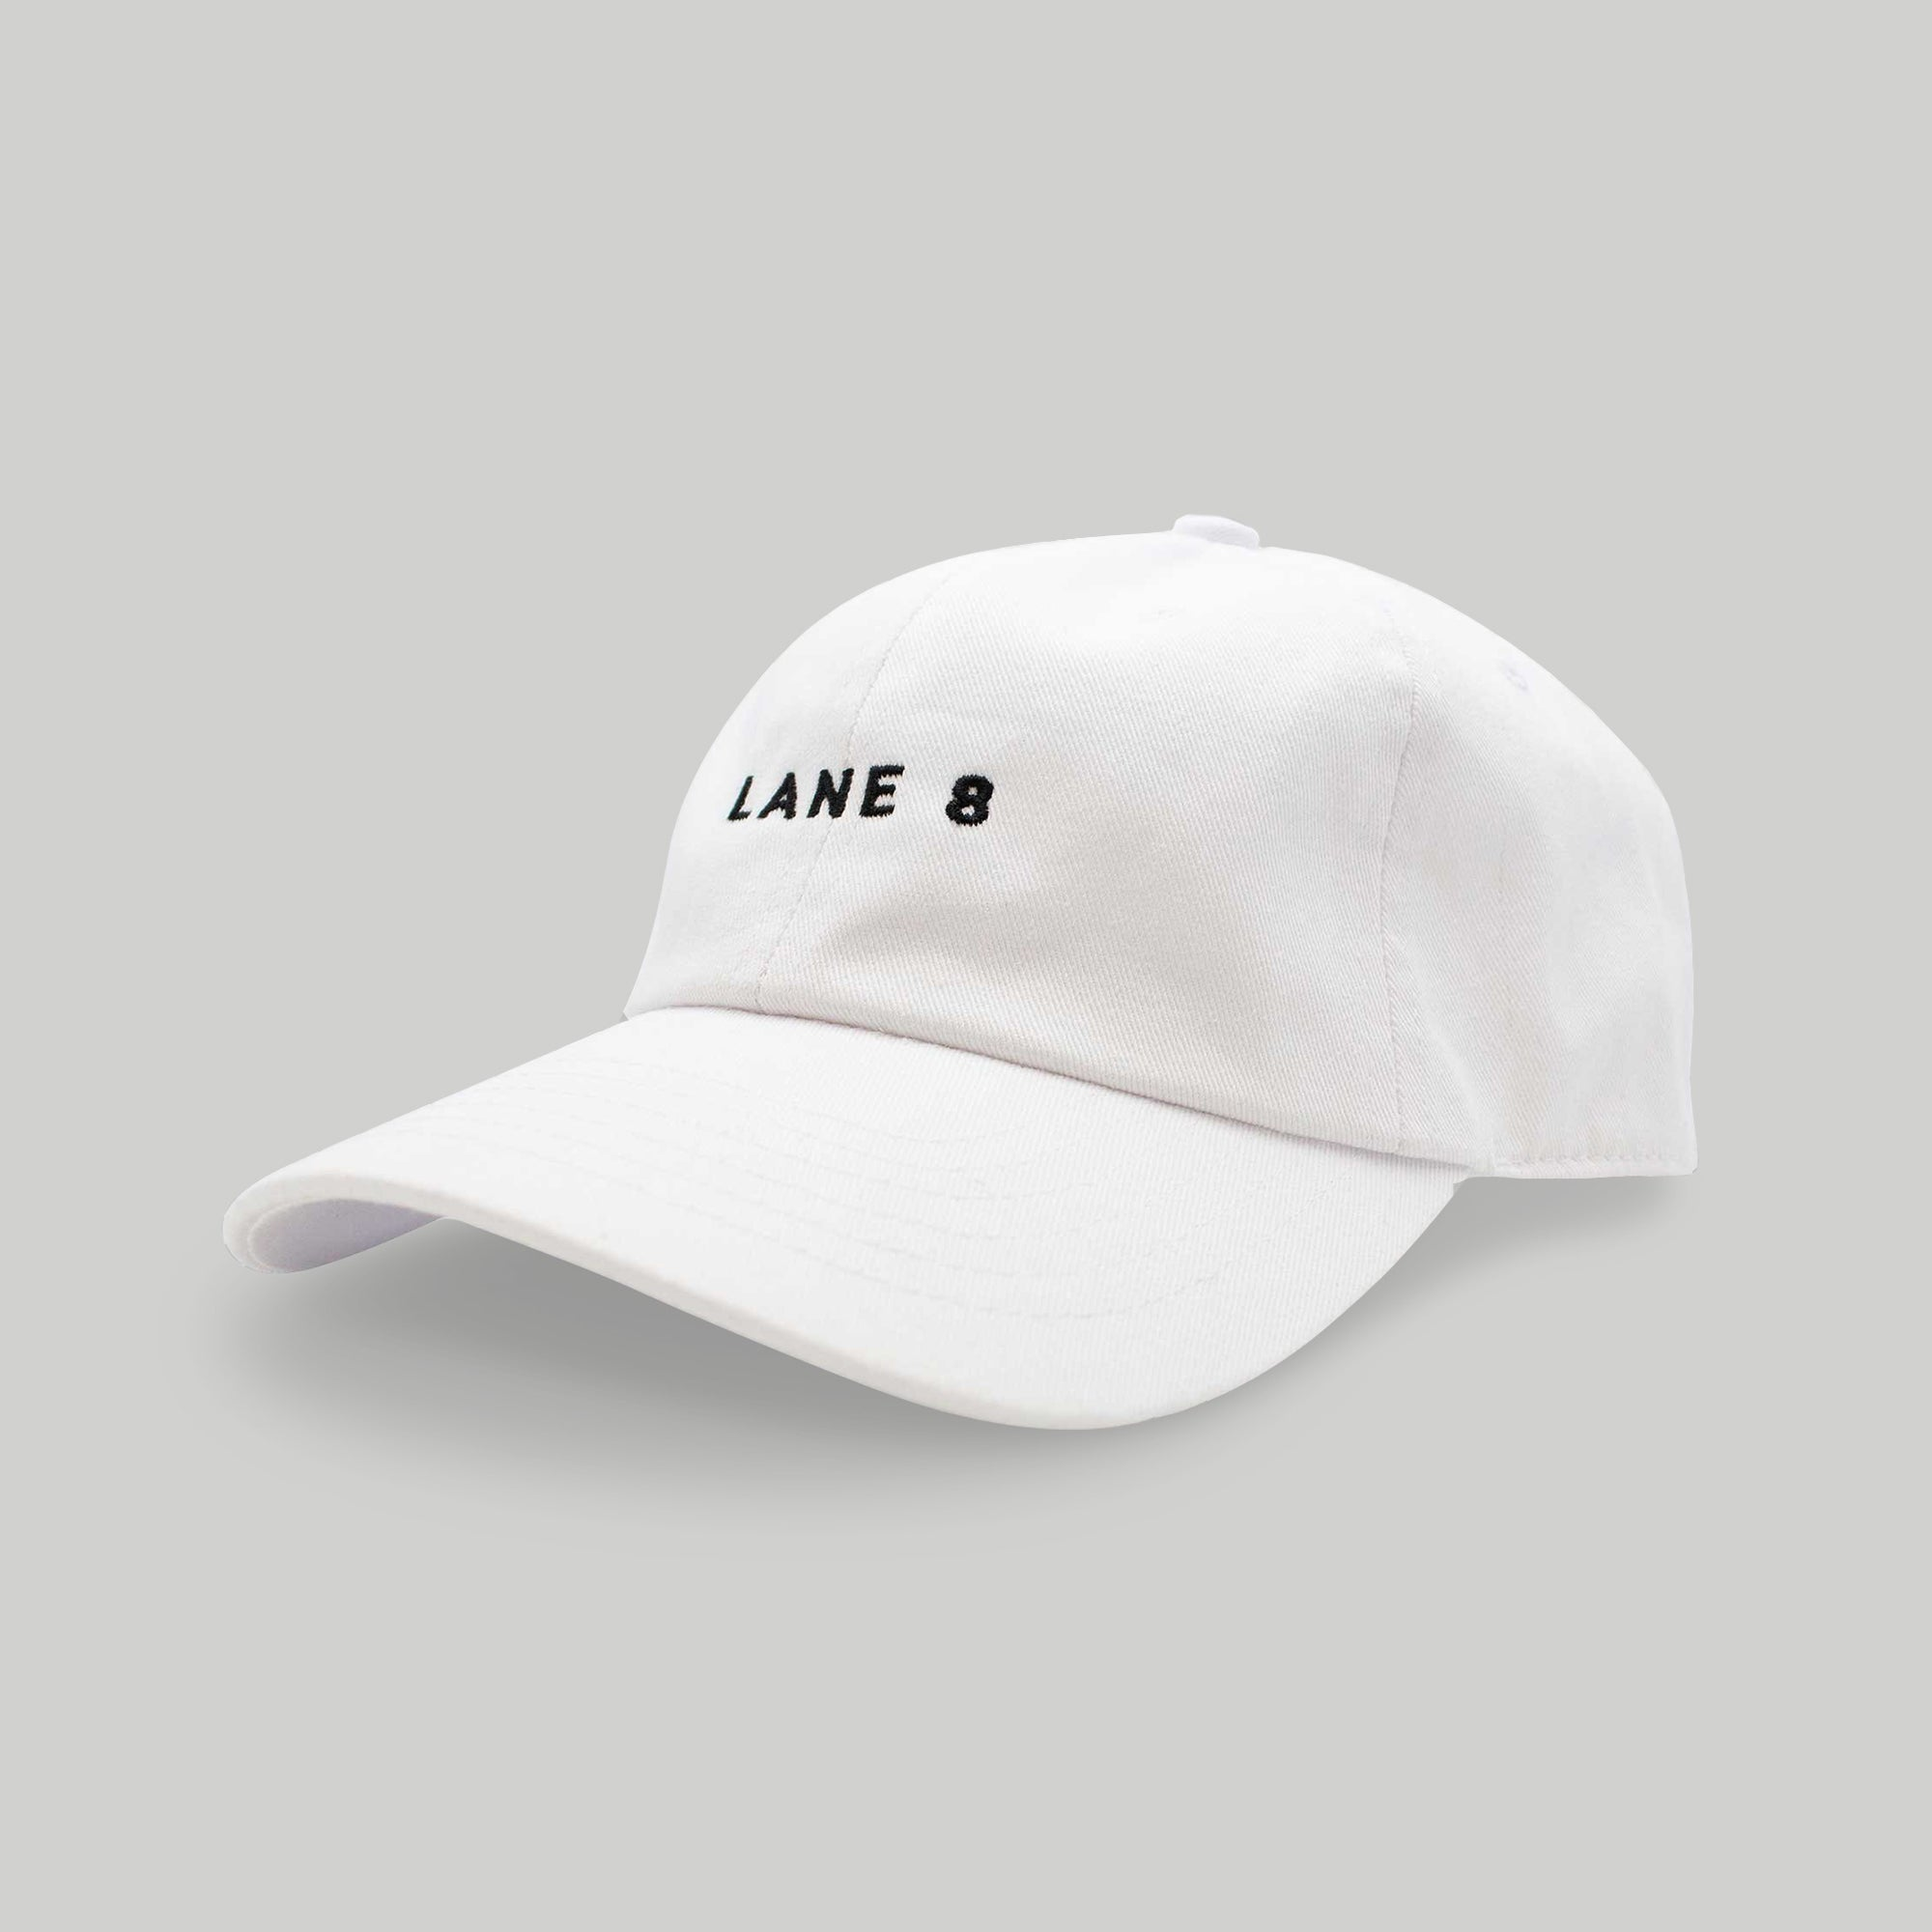 Lane 8 Dad Hat - White